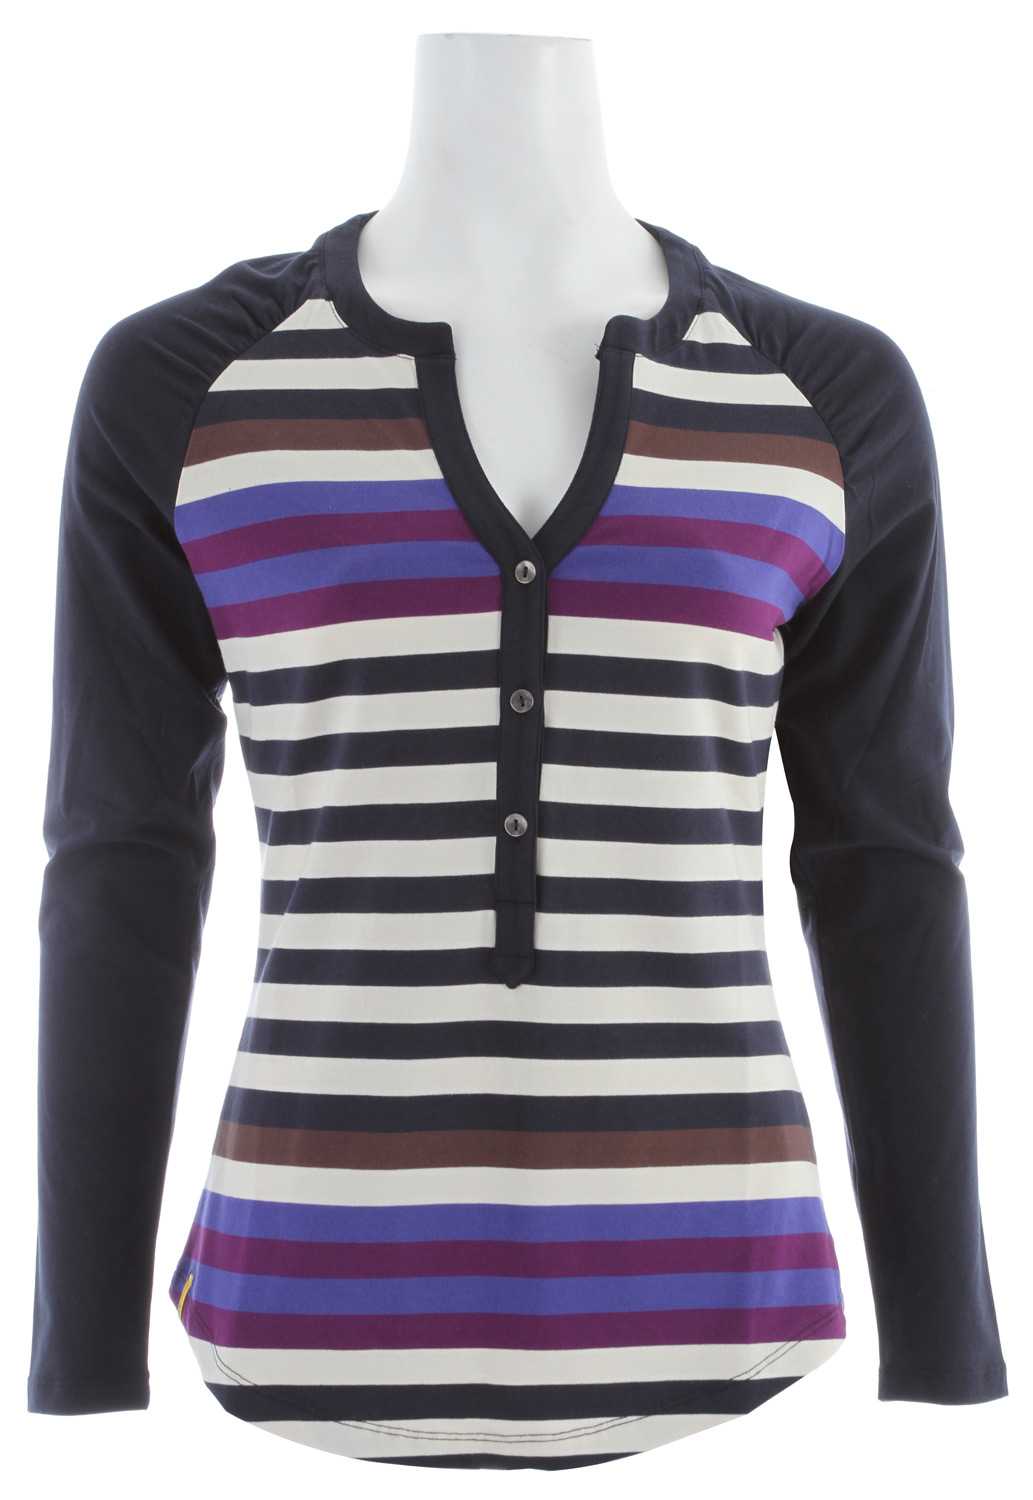 Lole Theory Henley Shirt Spectrum/Eclipse Stripe - $45.95